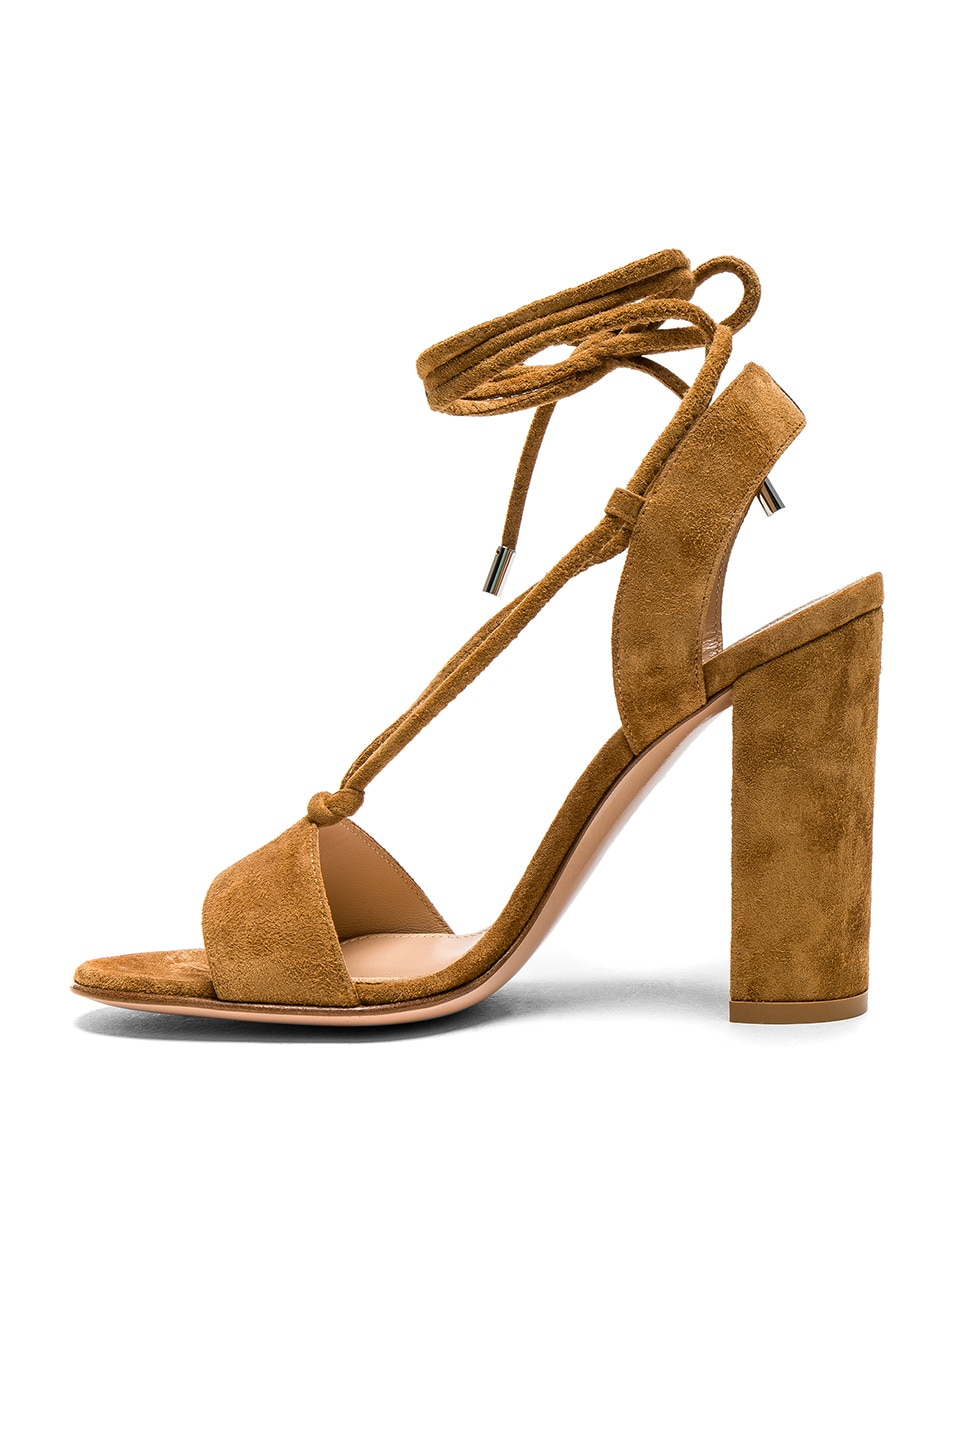 Image 5 of Gianvito Rossi Suede Lace Up Heels in Almond